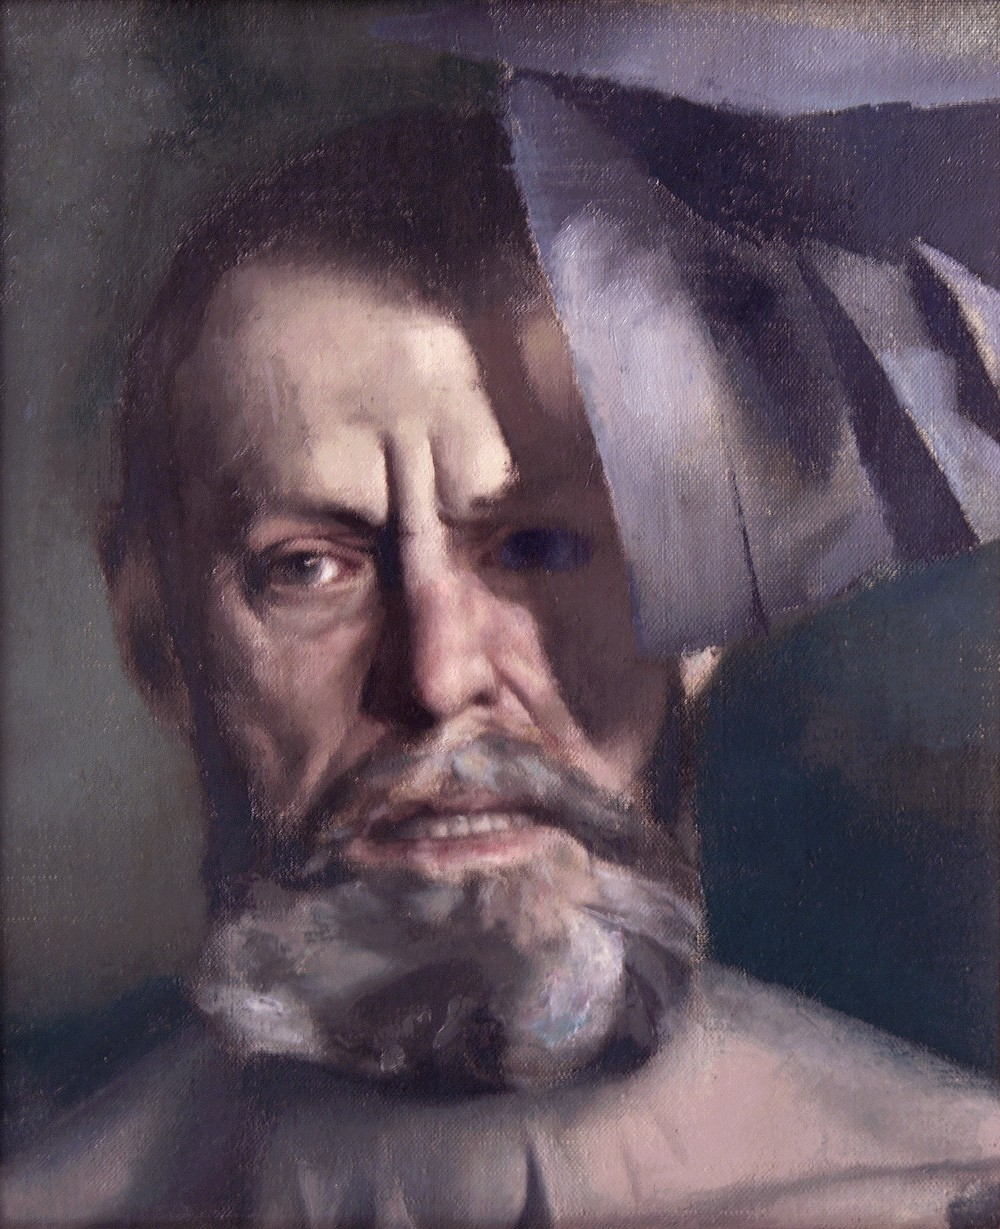 Detail of a painting by Edwin Dickinson, in which he presents himself as though a shingle is blowing across his face in high wind